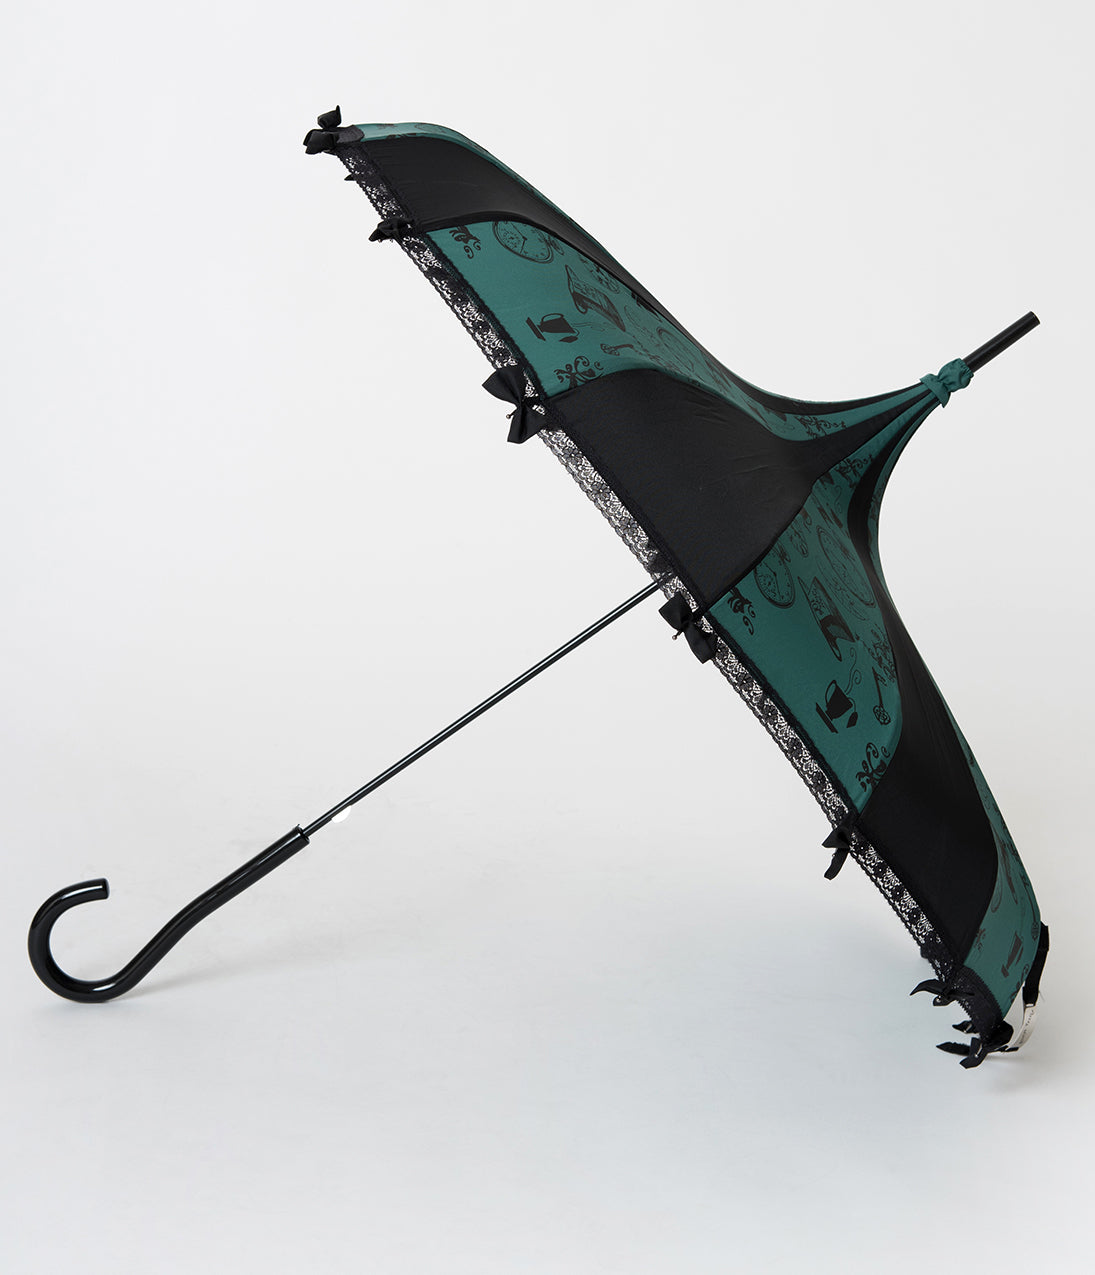 Vintage Style Parasols and Umbrellas Vintage Style Black  Emerald Green Tea Party Pagoda Umbrella $42.00 AT vintagedancer.com